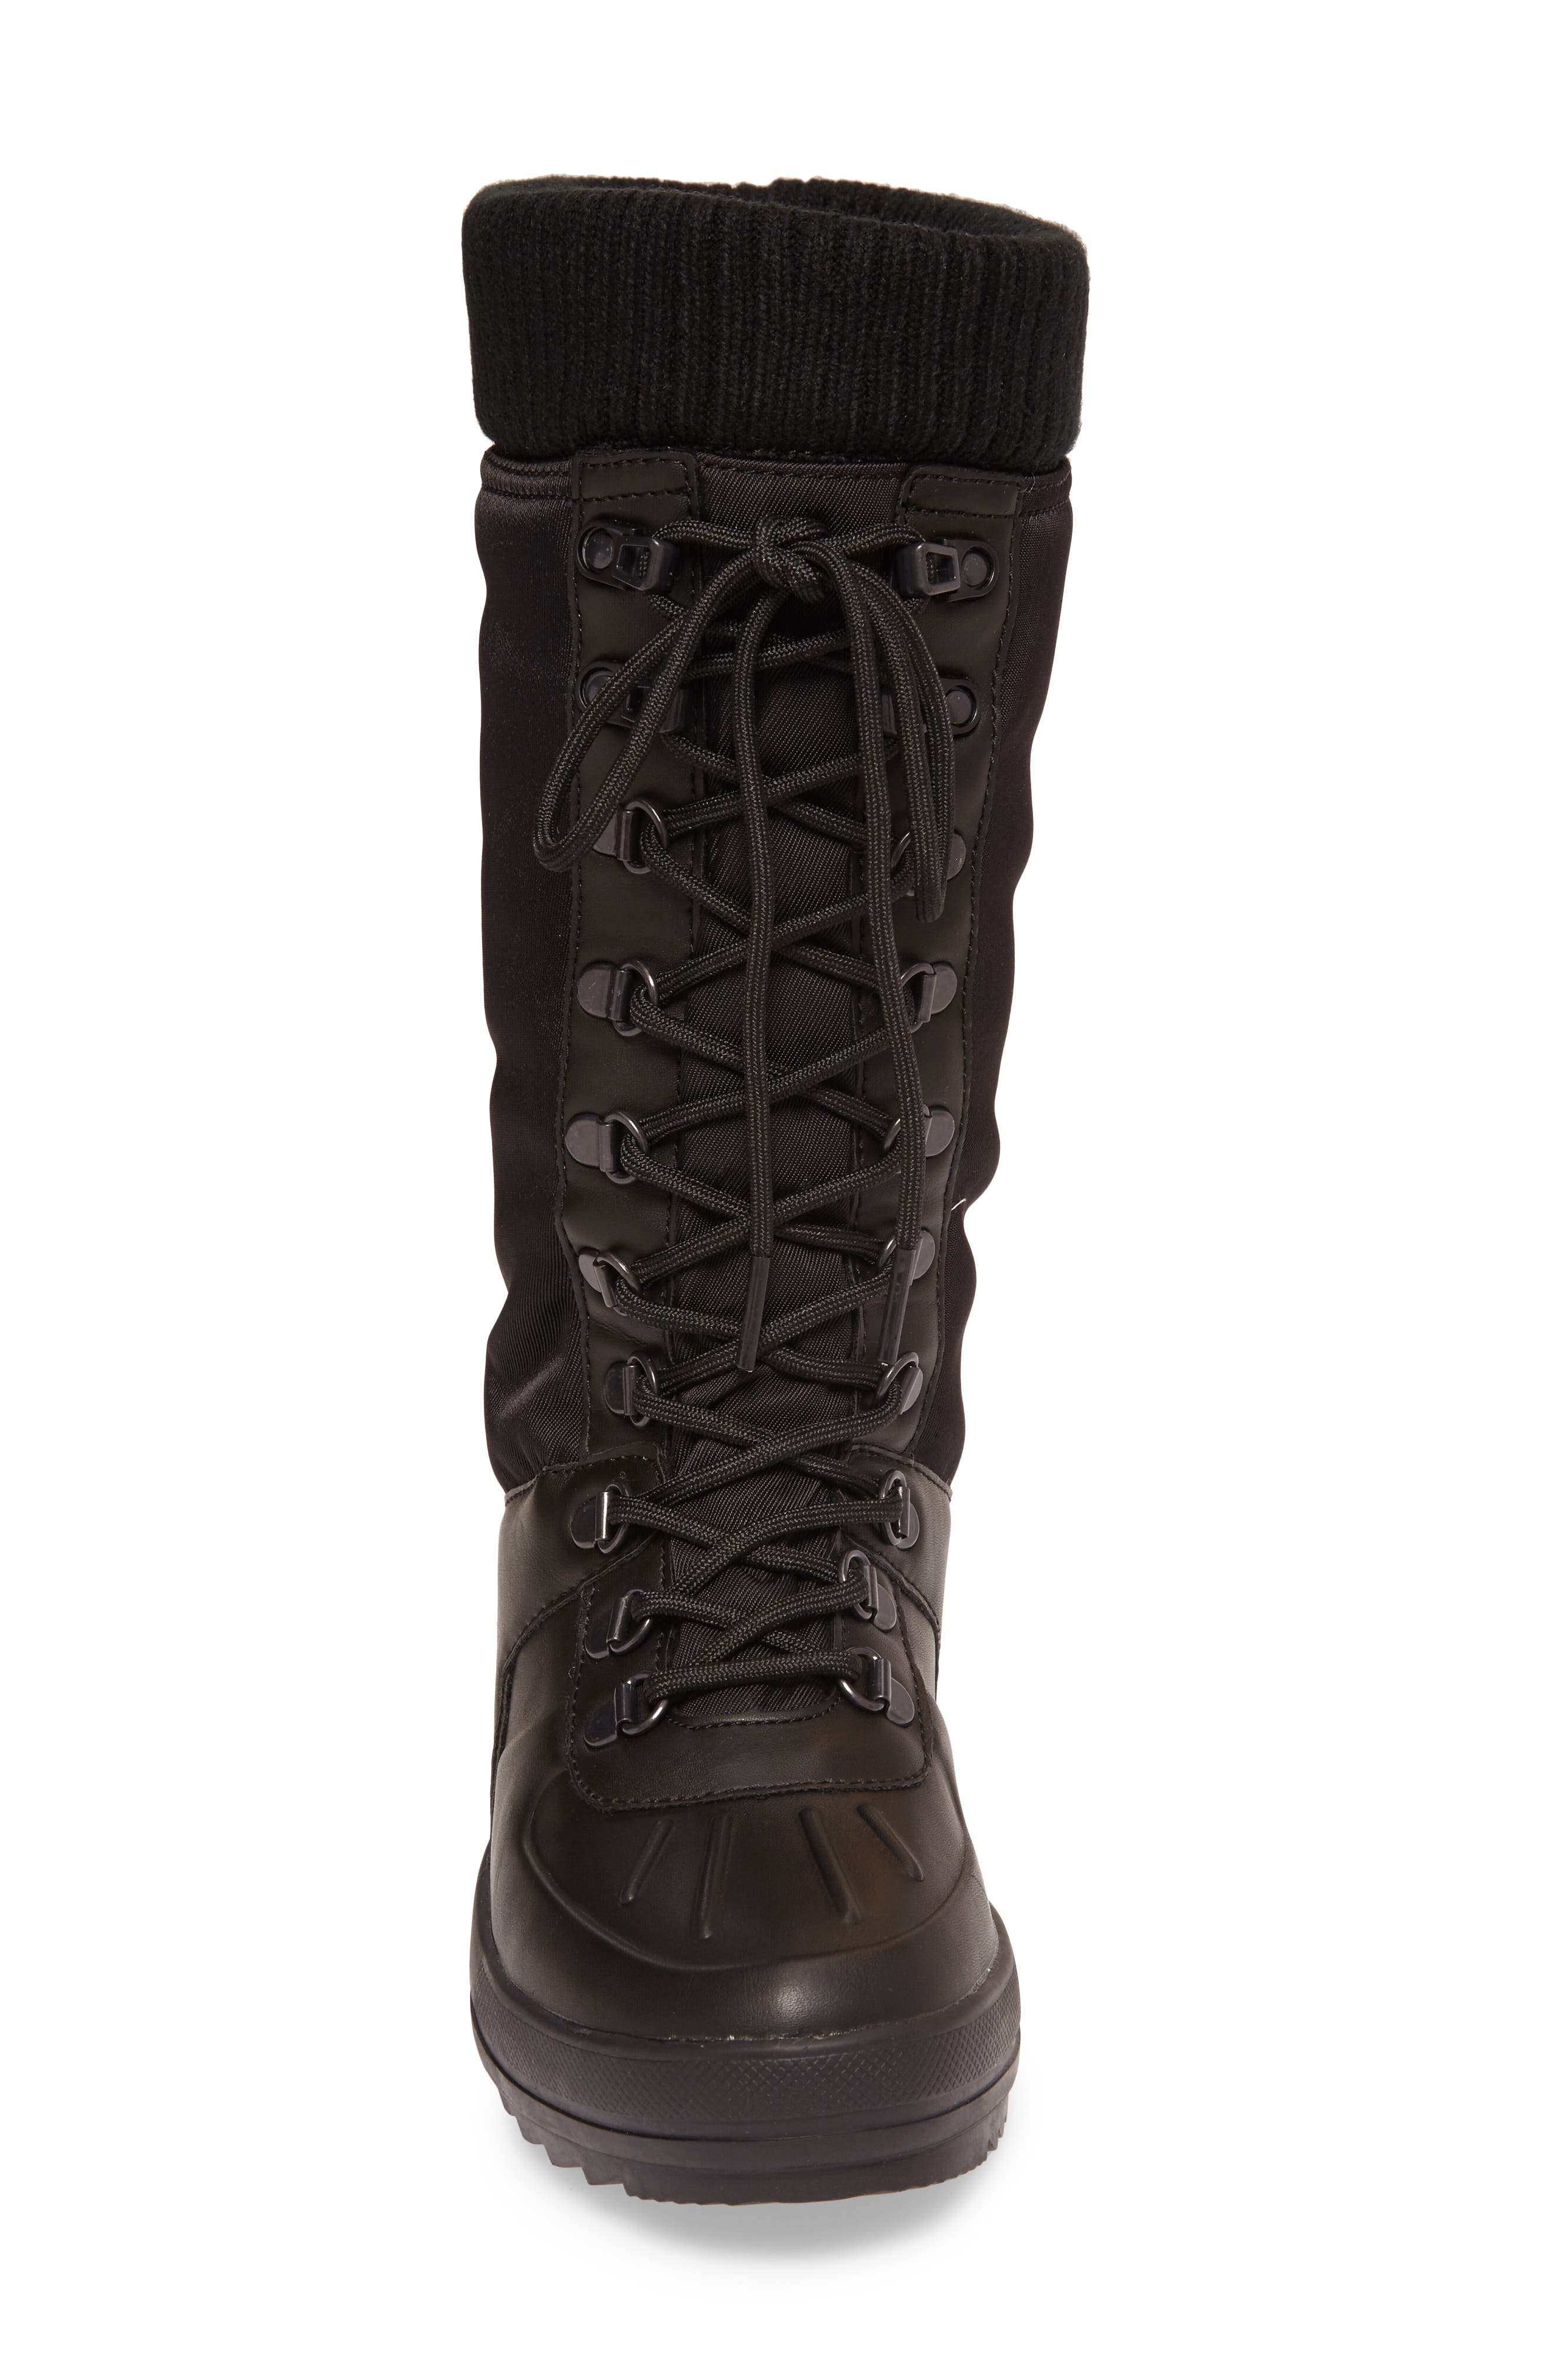 Vancouver Waterproof Winter Boot,                             Alternate thumbnail 4, color,                             Black All Over